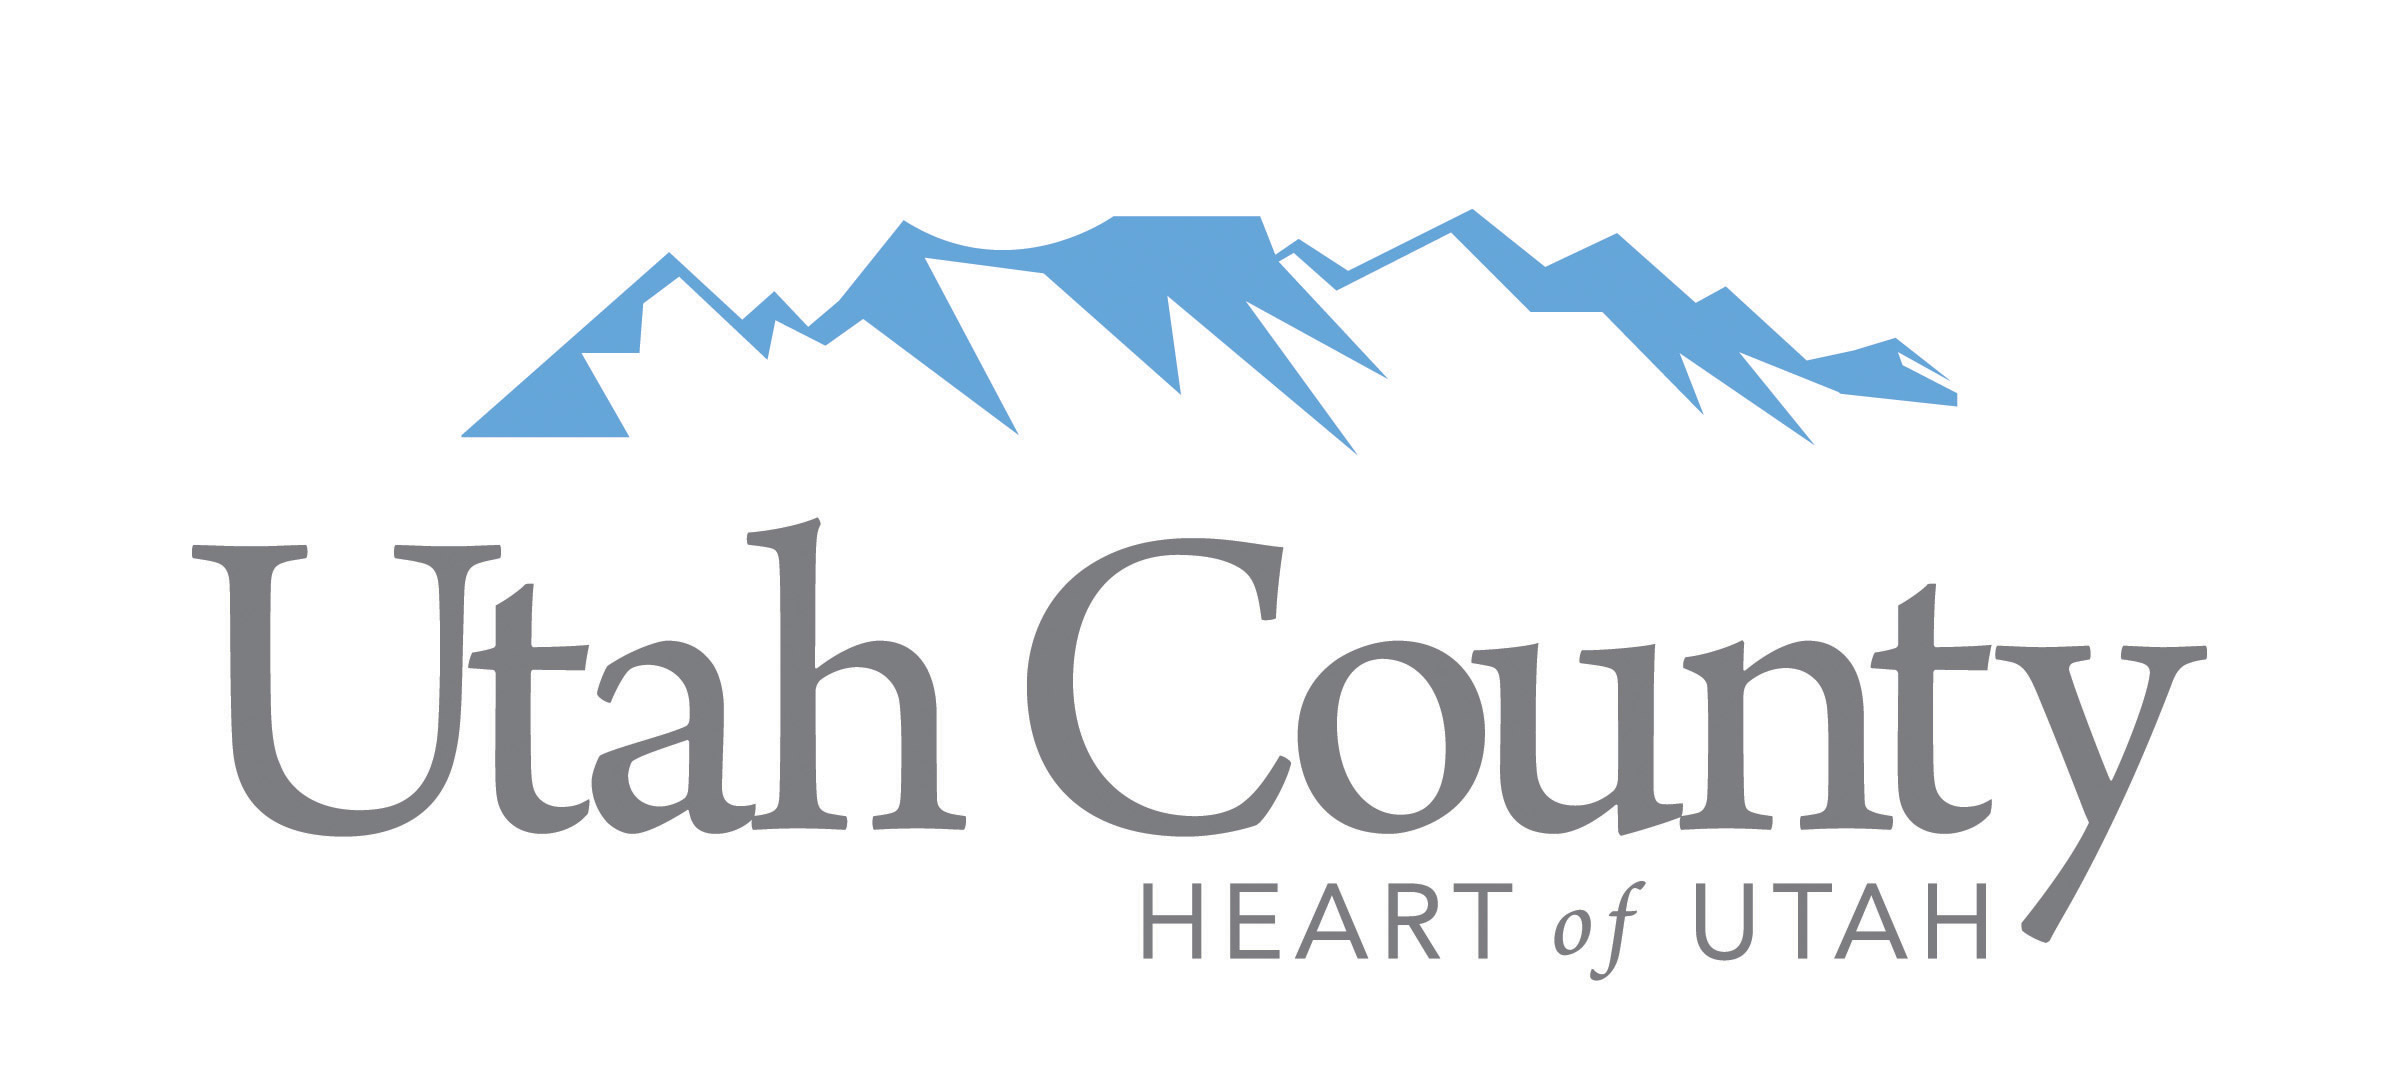 Utah County Commission